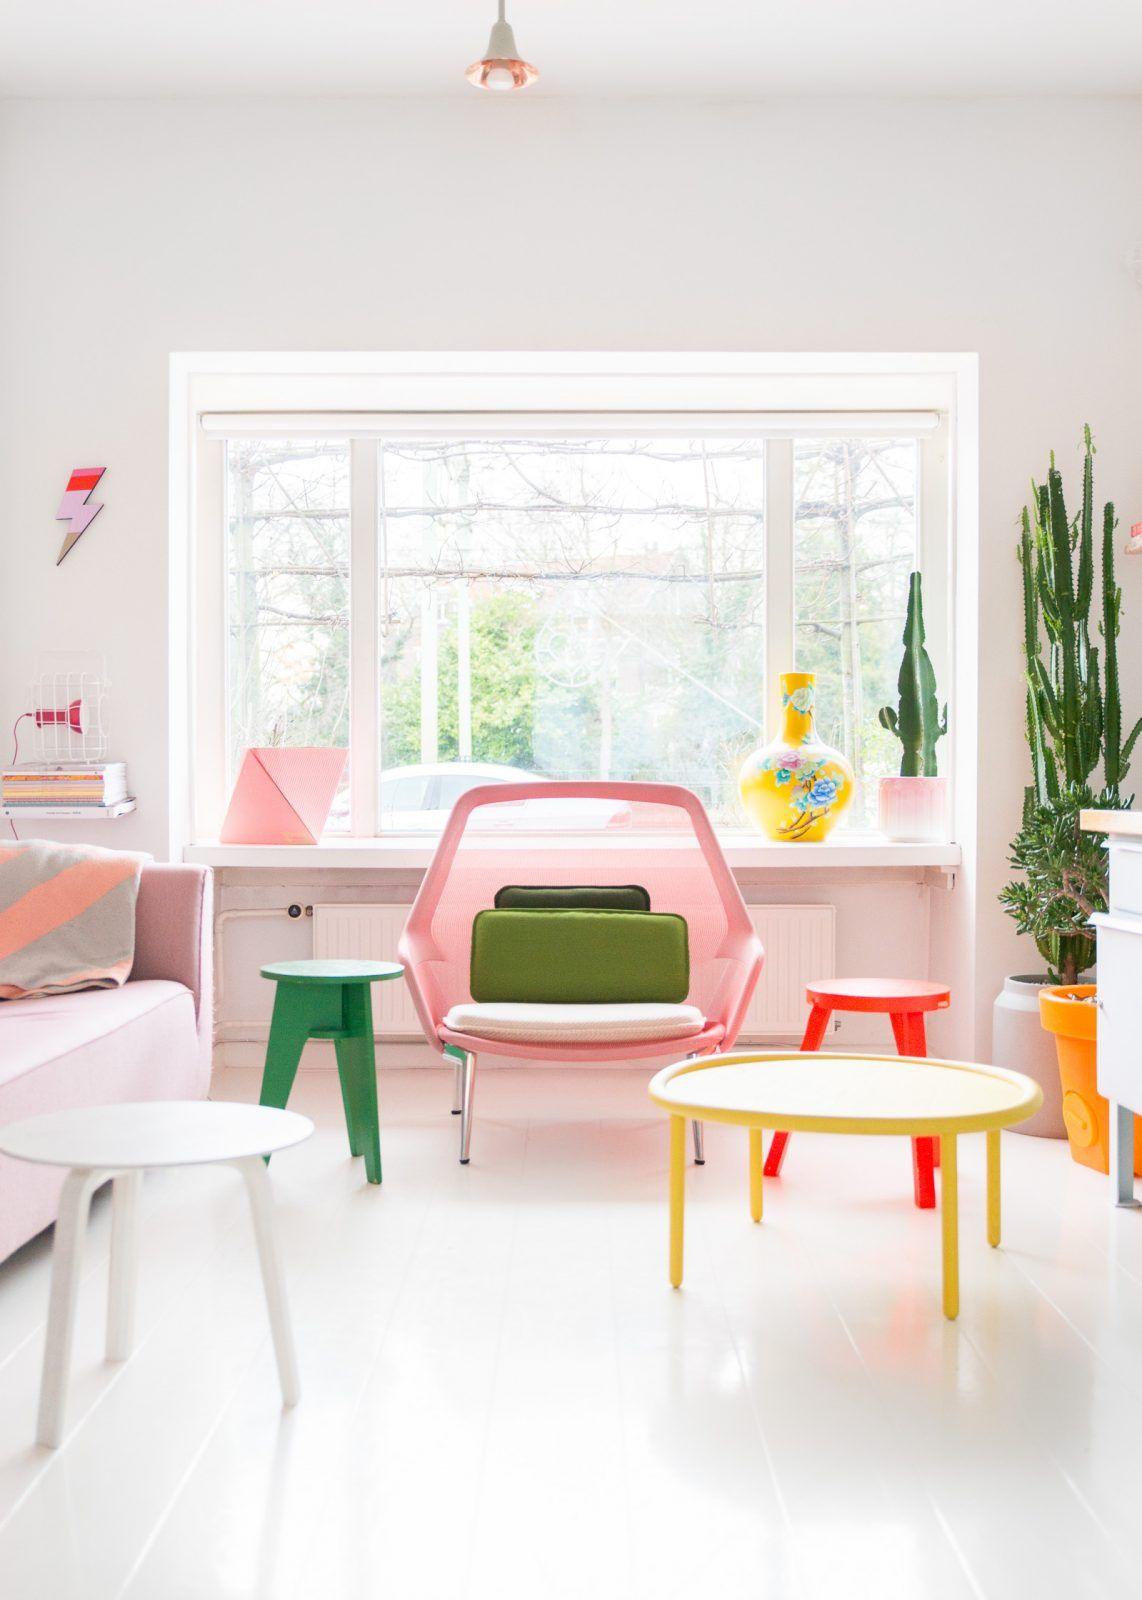 Vitra Slow Chair | Interiors, Room and Living spaces